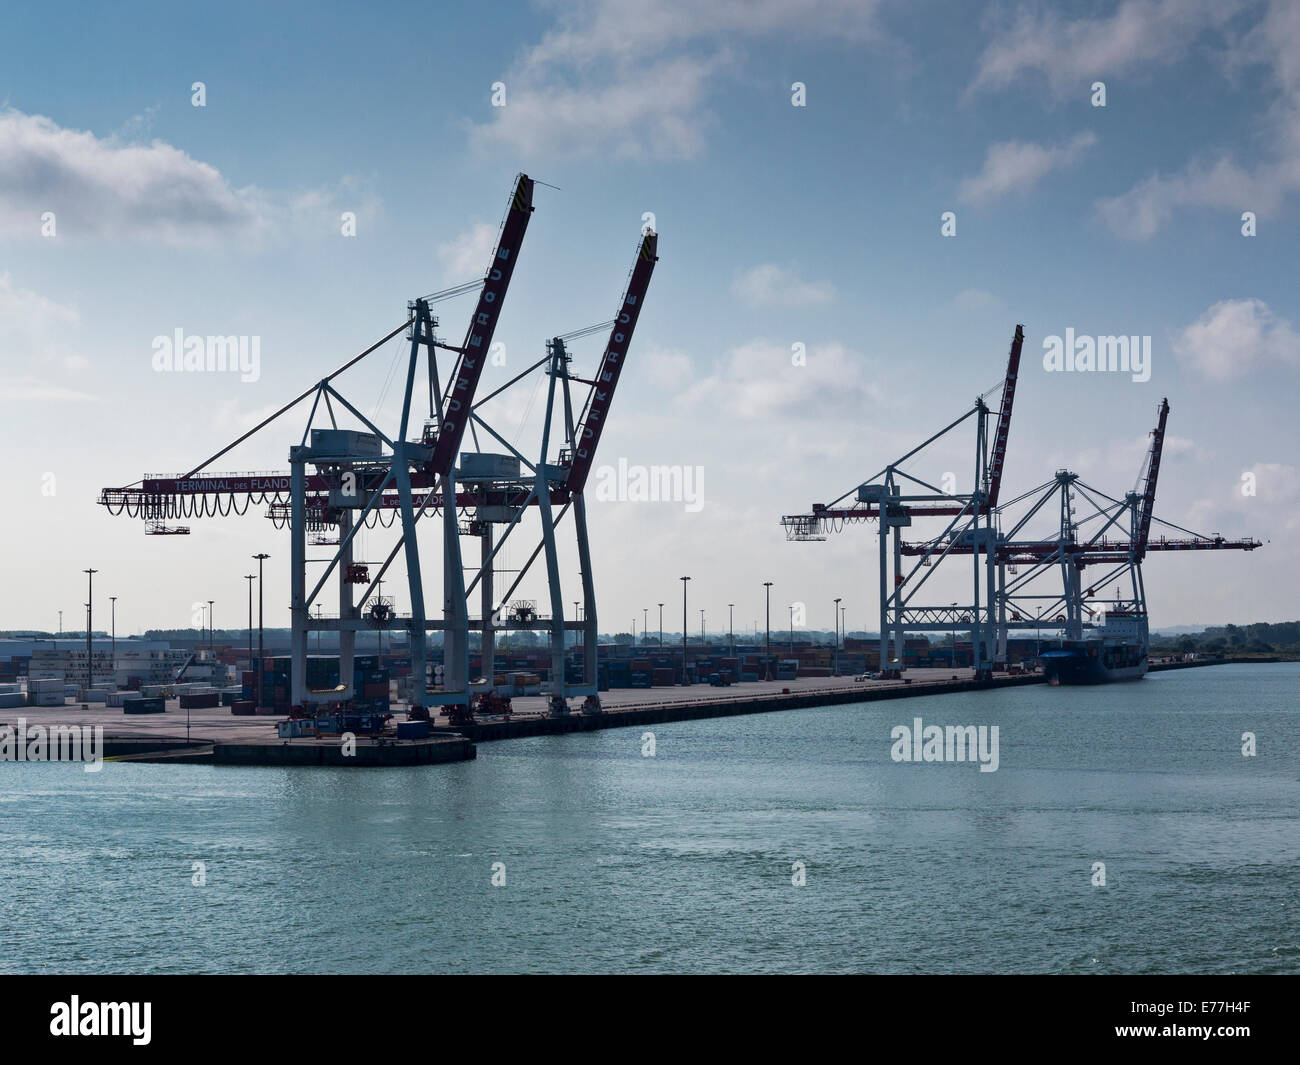 Cranes at the container terminal at Dunkerque (Dunkirk) France. Taken against the light. - Stock Image